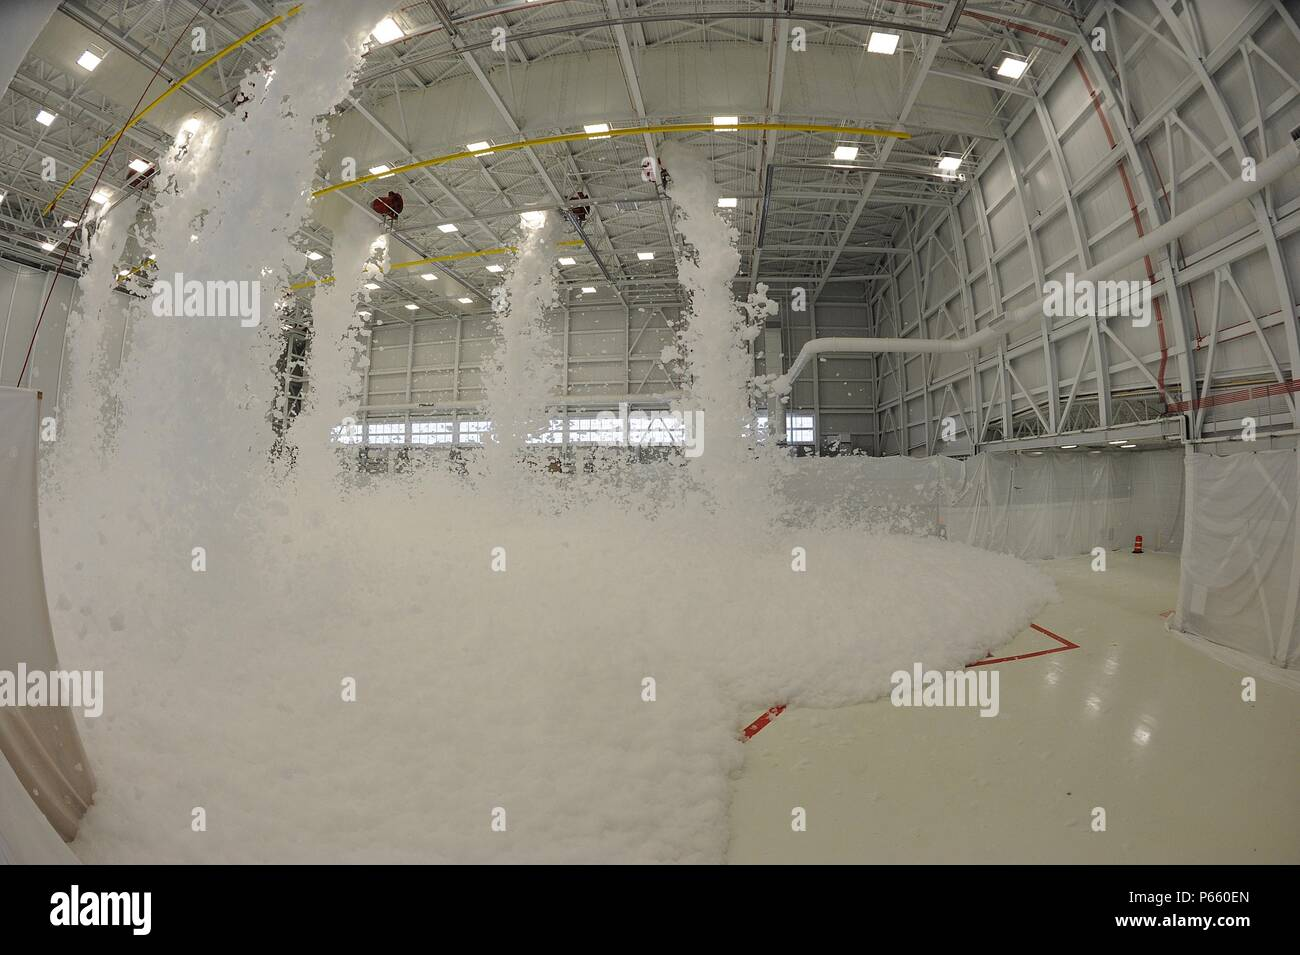 Foam rains down in a hangar during a fire suppression safety test, May 3, 2016, at McConnell Air Force Base, Kan. The new hangars will house the KC-46's, which are scheduled to arrive here in Spring 2017. As a safety feature, foam is dispensed from generators in the top of the hangar which expand and suffocate fire. (U.S. Air Force photo/Airman 1st Class Jenna K. Caldwell) Stock Photo